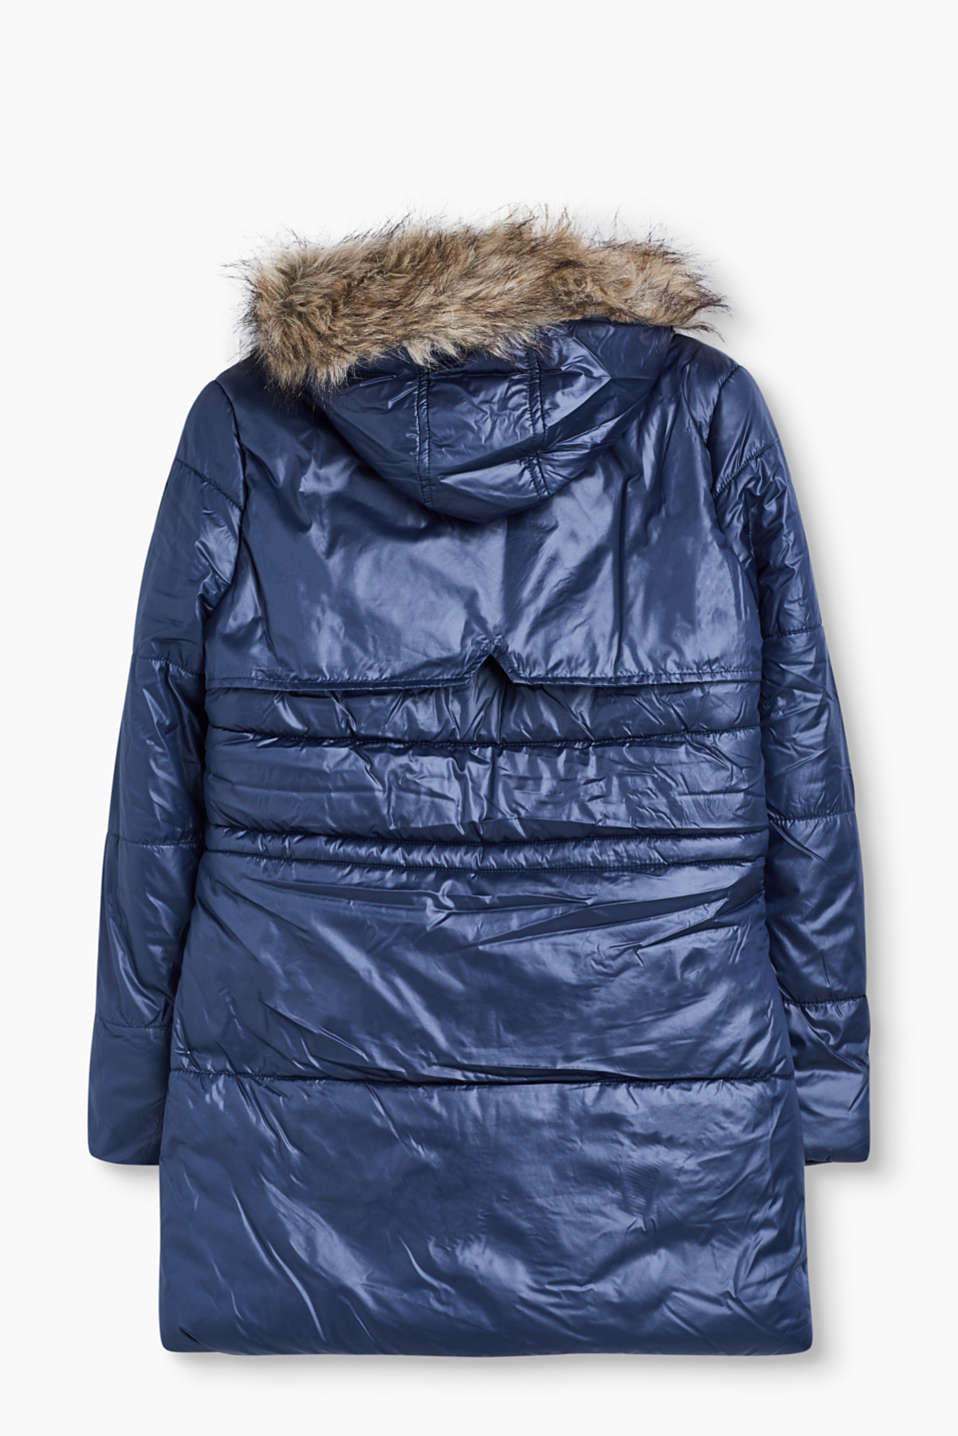 TR9 Women Long Hooded Quilted Jacket Winter Warm Jacquard Coat Chinese Tang Suit Ethnic Pattern Cuff $ 89 99 Prime. Leajoy. Women's 3 in 1 Outdoor Windbreaker Raincoat Waterproof UV Protect Shell & Fleece Inner Hooded Jackets. from $ 29 99 Prime. out of 5 stars JOYCHEER.